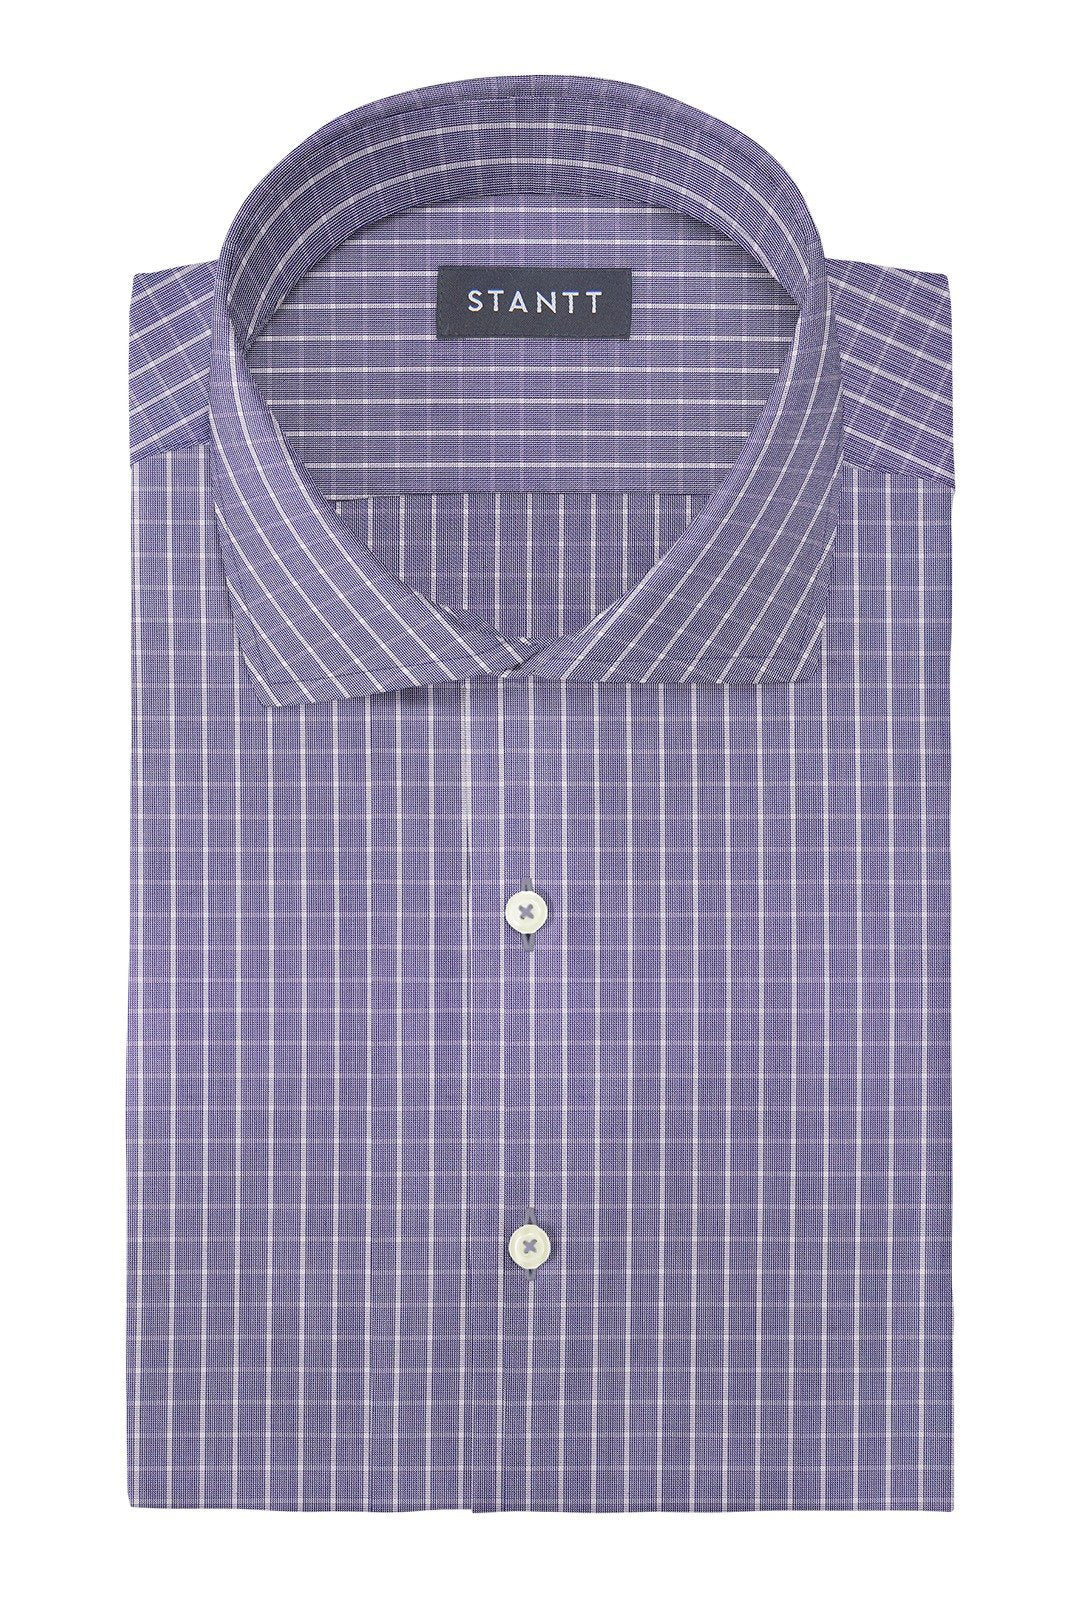 Wrinkle-Resistant Navy Gingham: Cutaway Collar, French Cuff